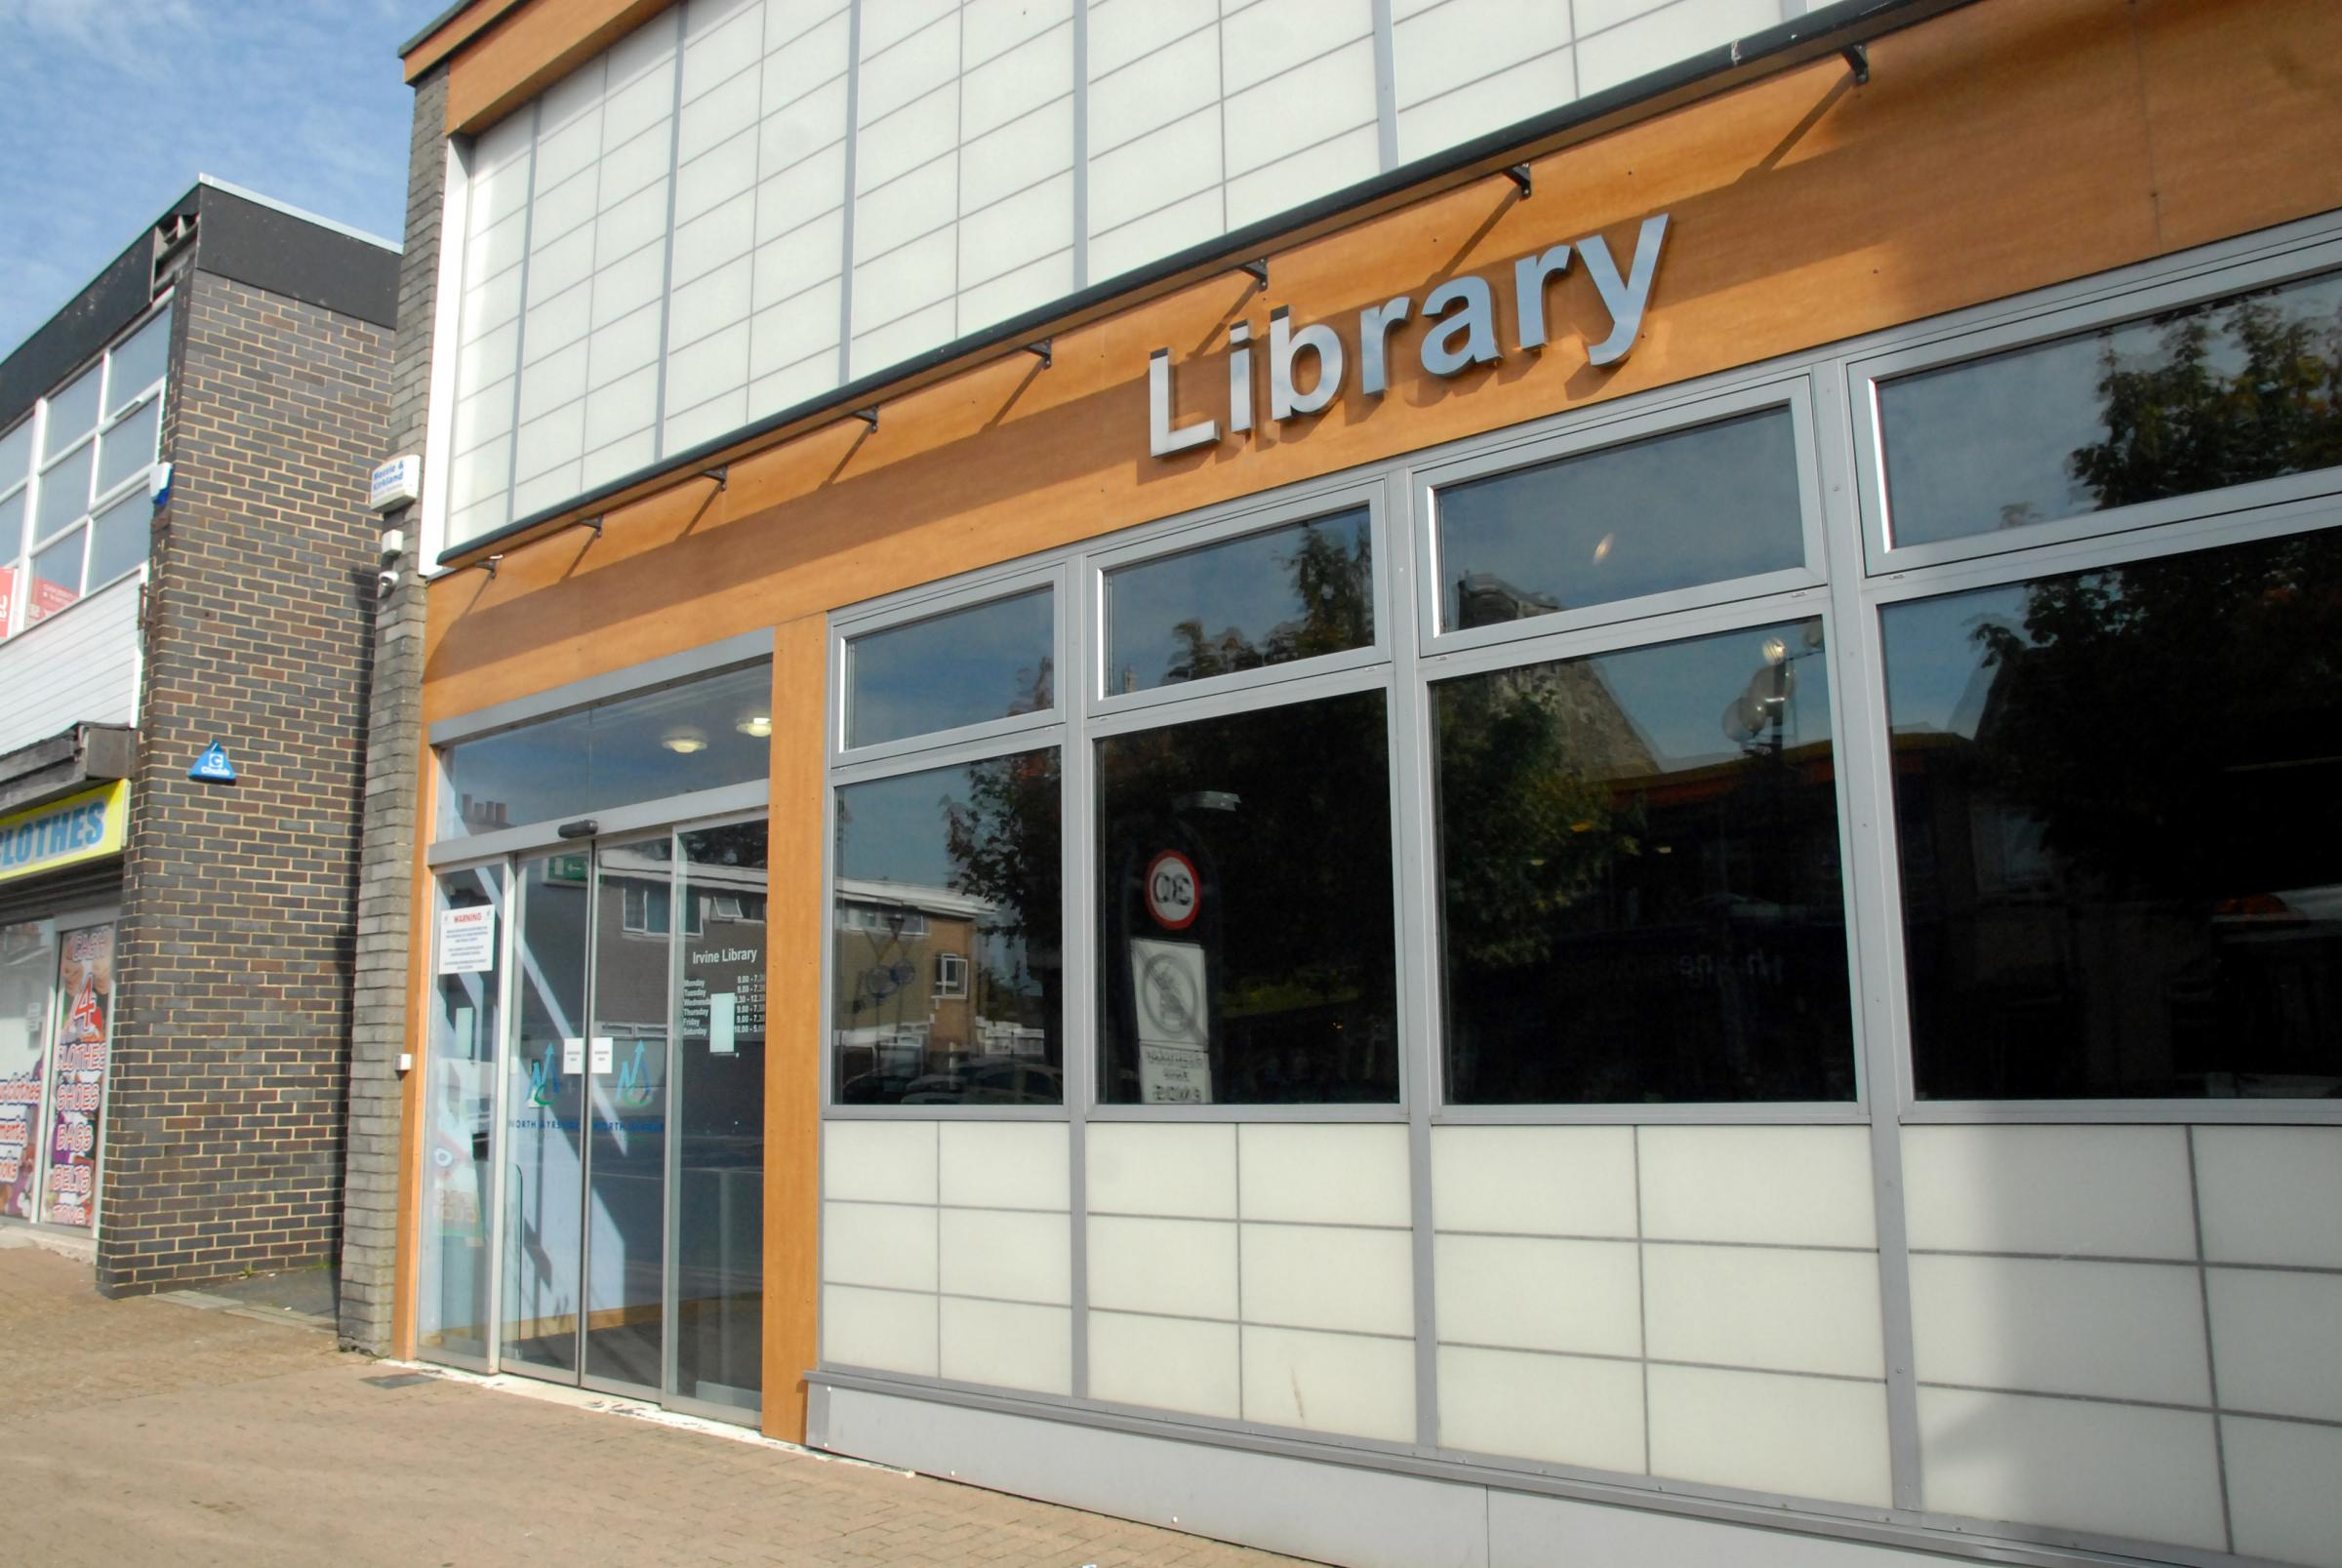 Libraries and community centres facing financial threat